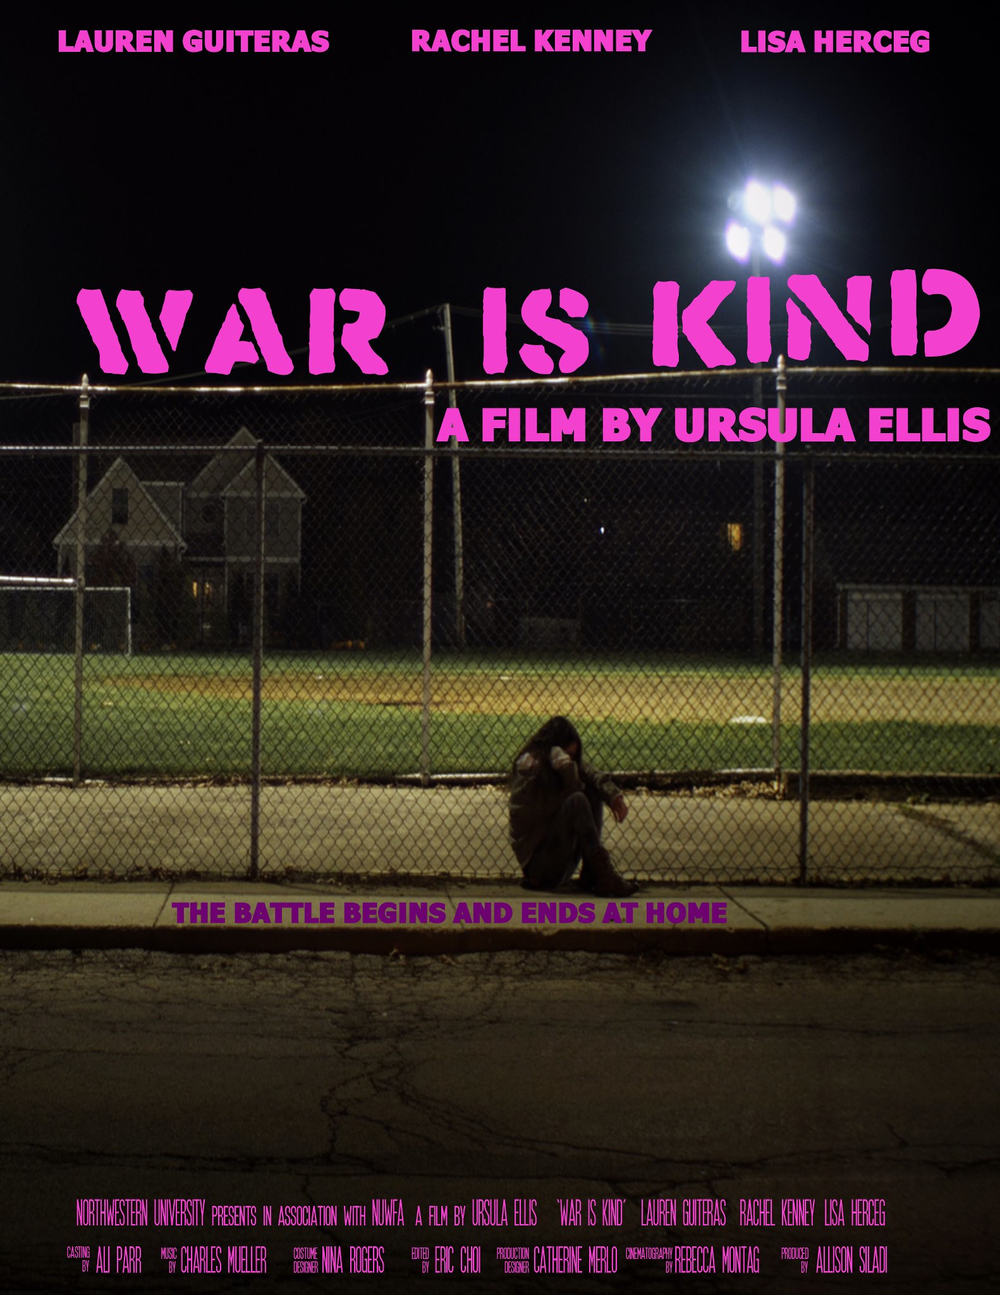 Promotional poster for War is Kind